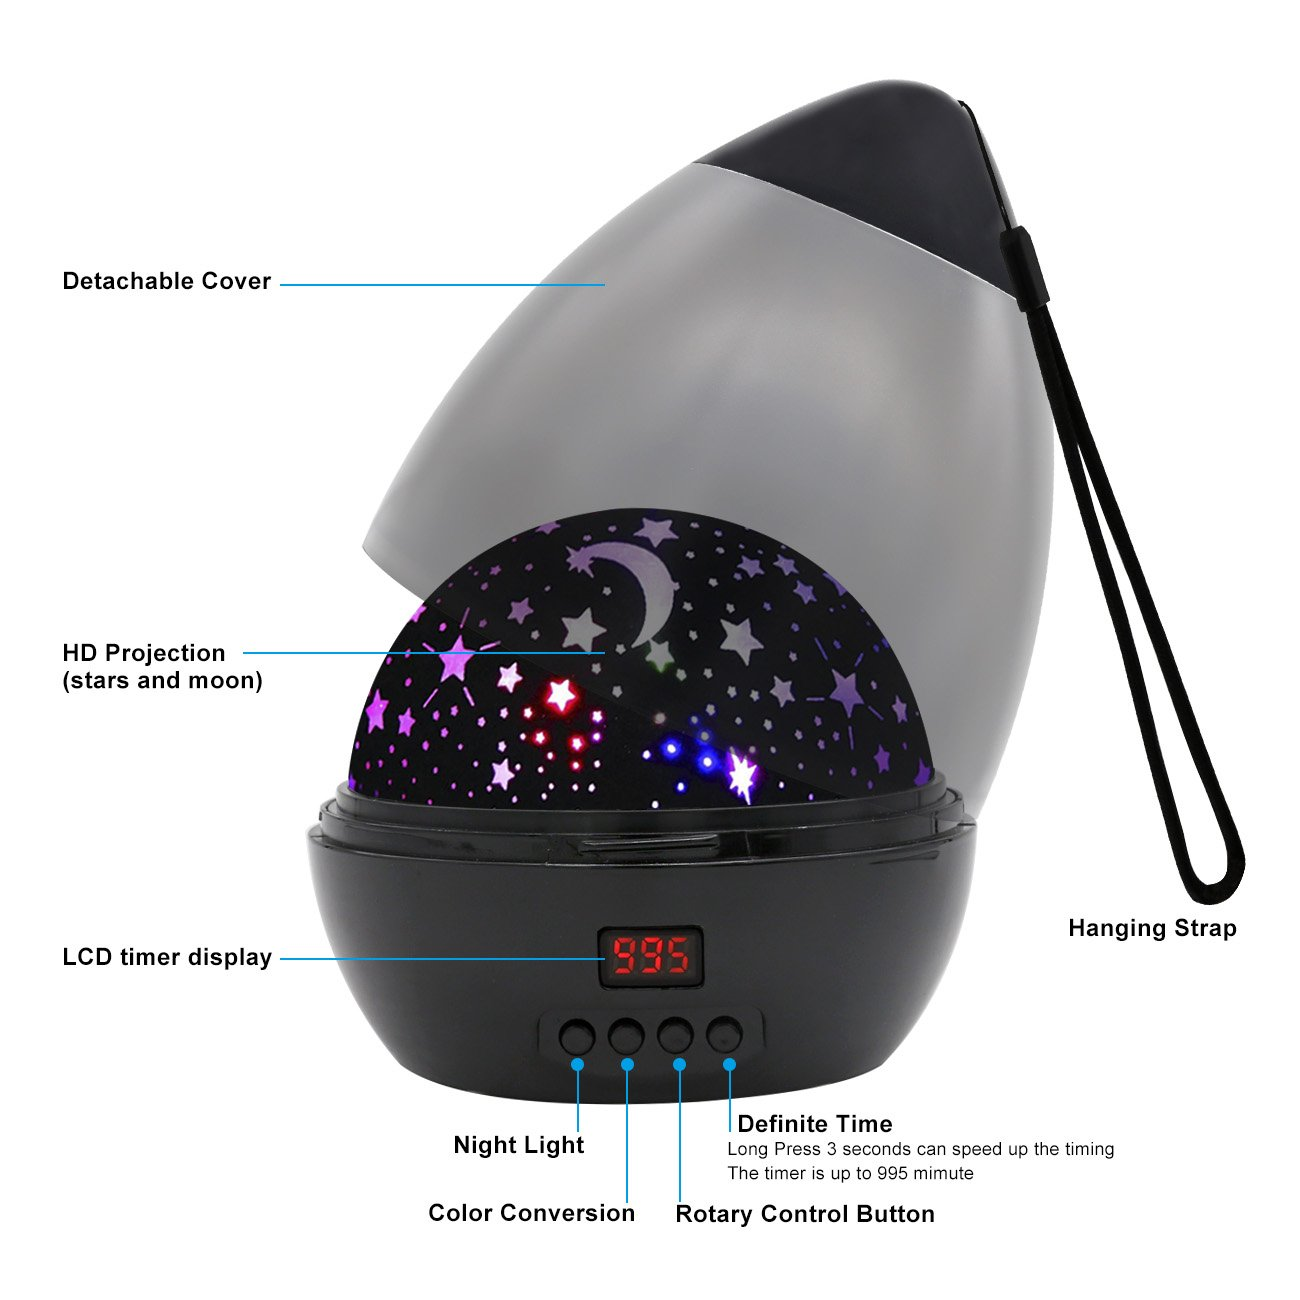 [ Newest Vision ] Star Light Rotating Projector, MOKOQI Night Lighting Star Moon Projection Lamp 4 LED Bulbs 4 Modes with Timer Auto Shut-Off & Hanging Strap for Kids Baby Bedroom (Black) by MOKOQI (Image #3)